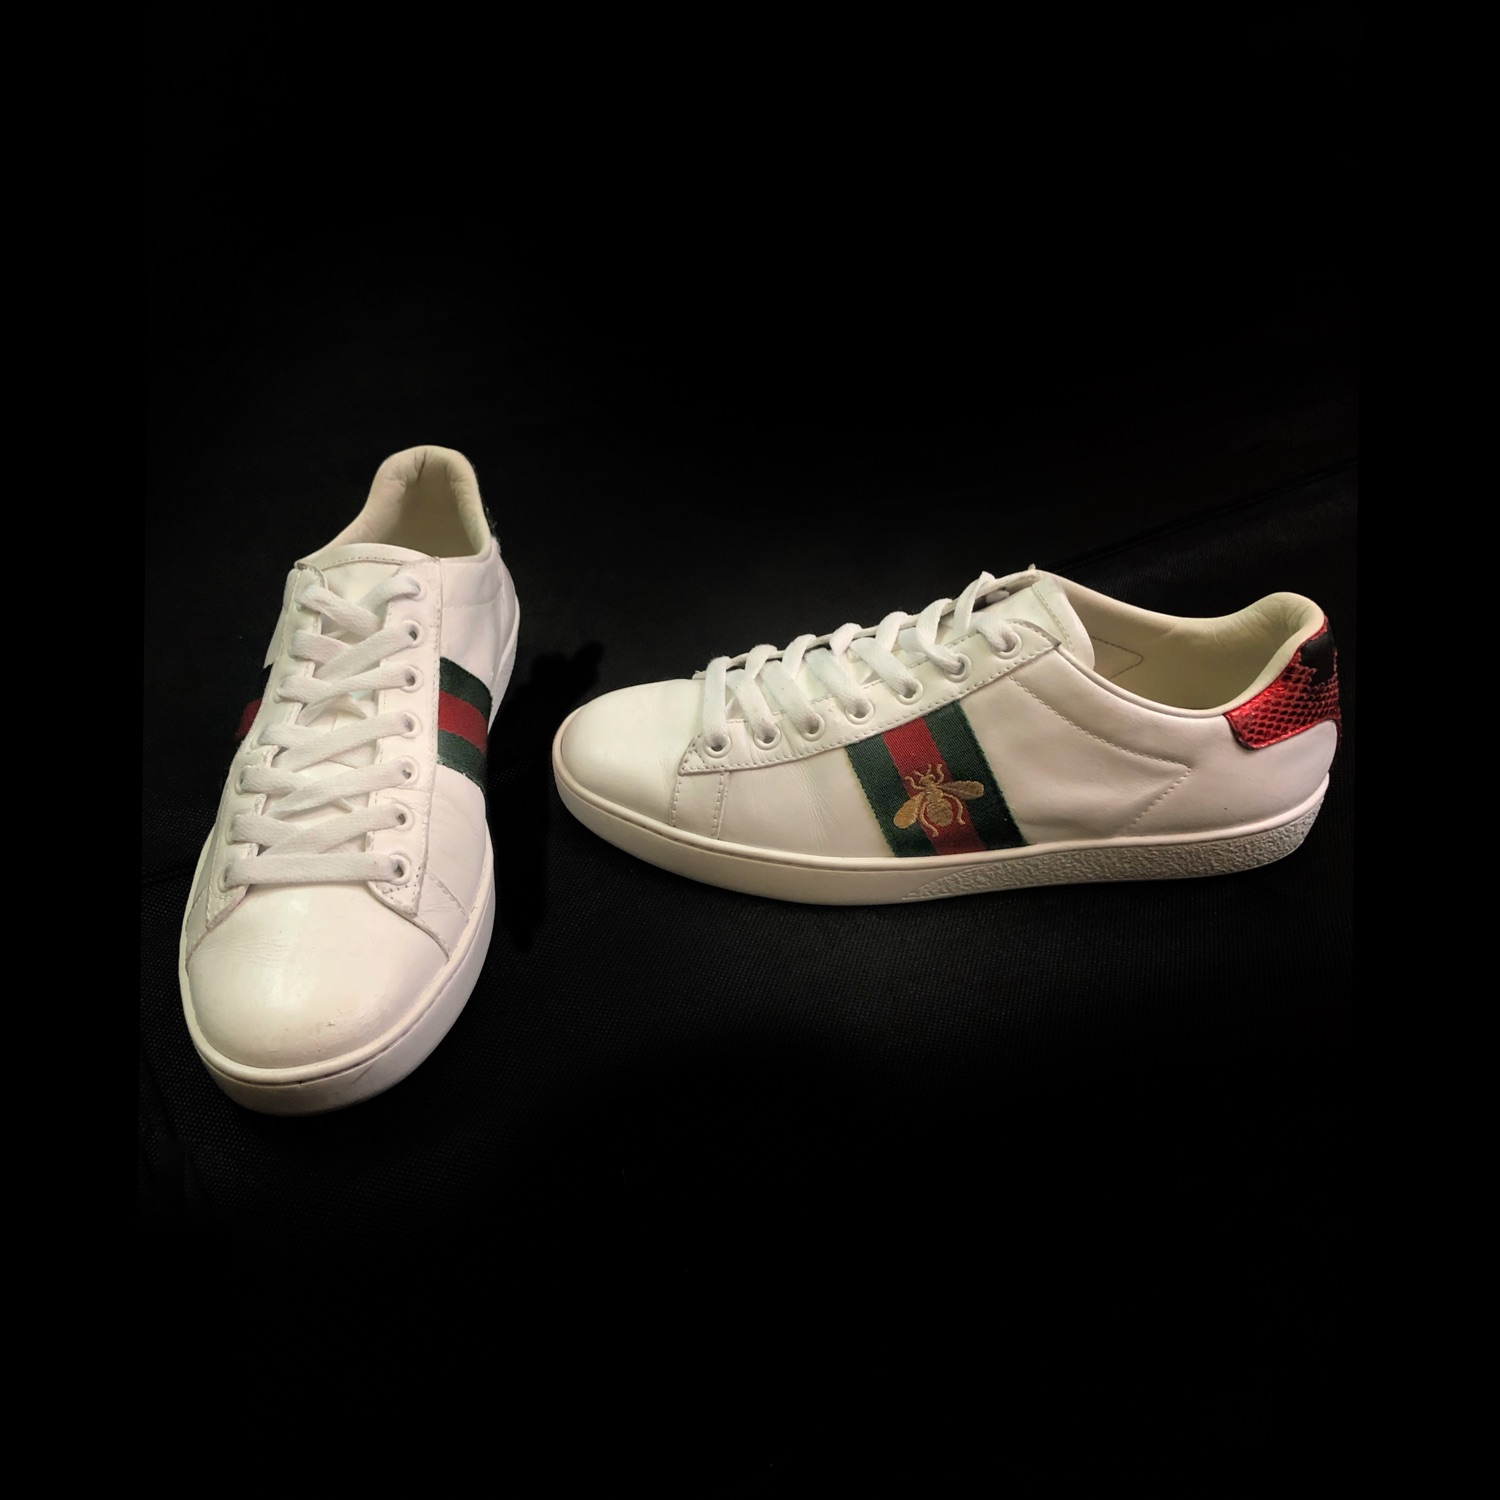 Gucci Bee Ace Shoes